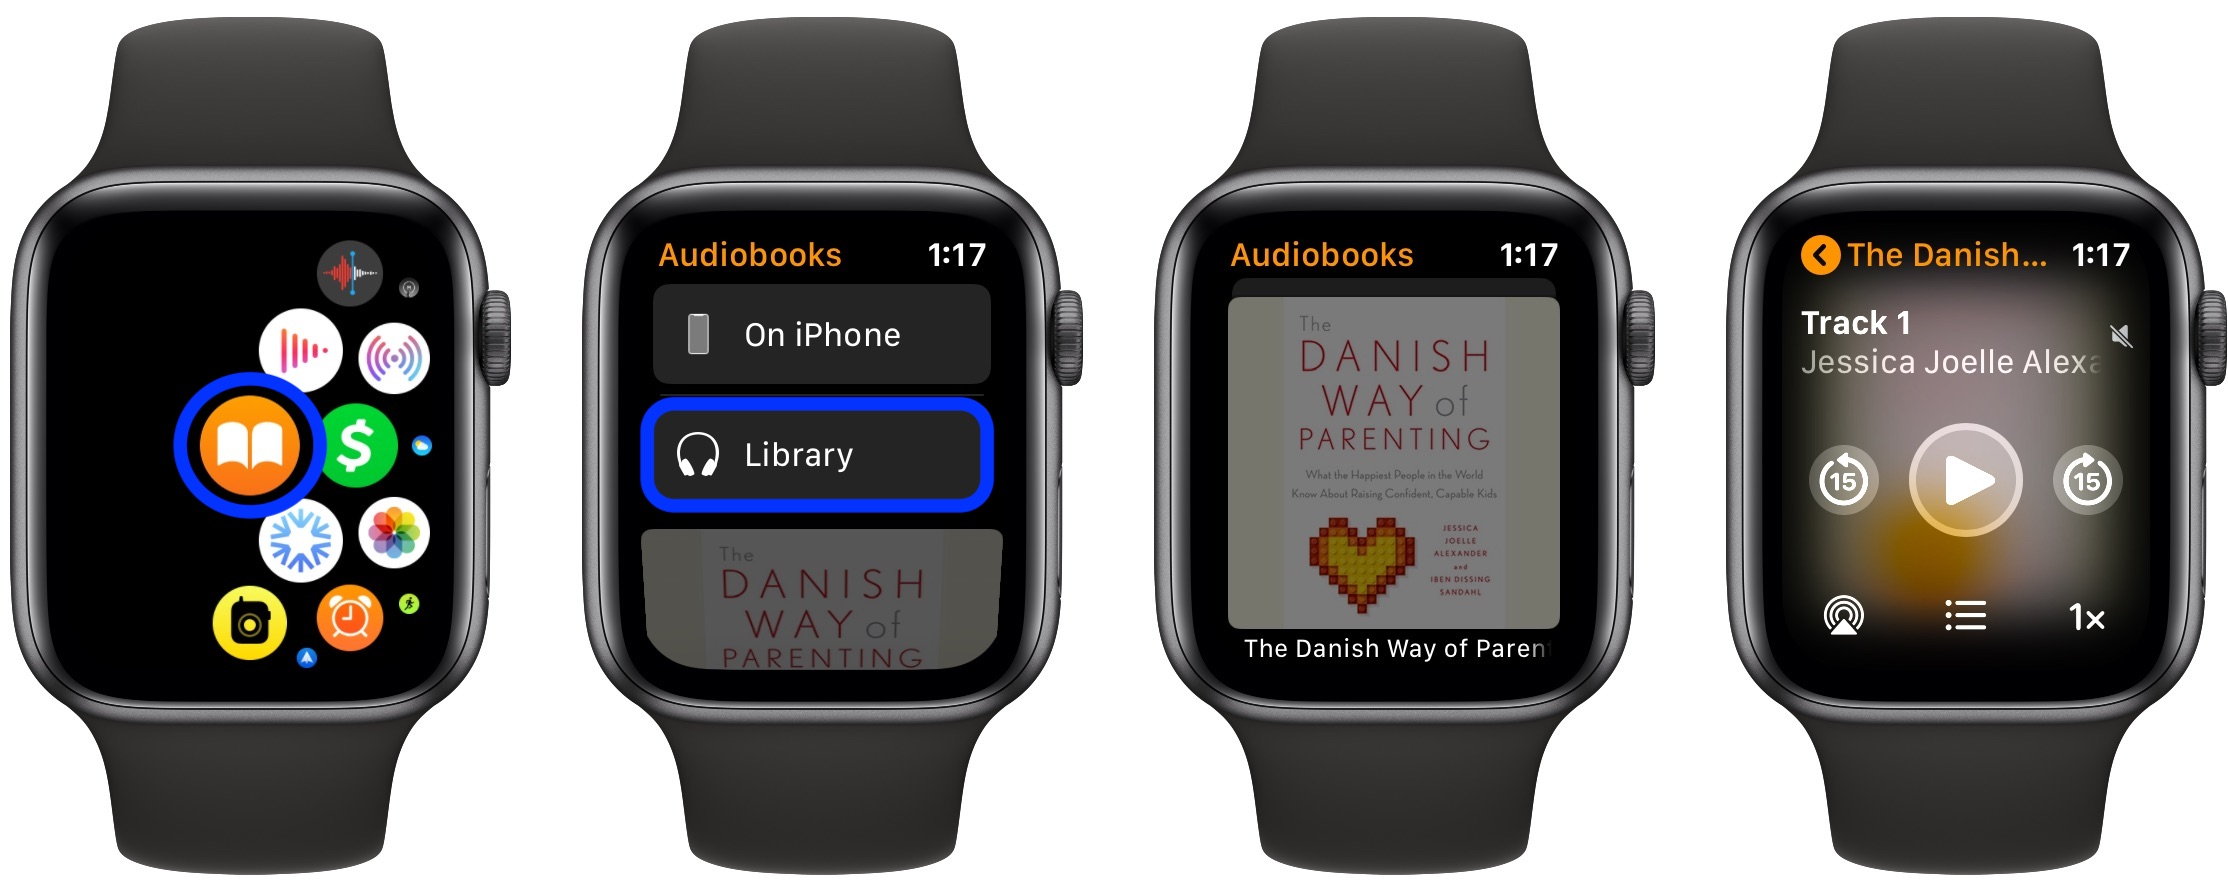 watchOS 6: How to play Apple audiobooks on Apple Watch